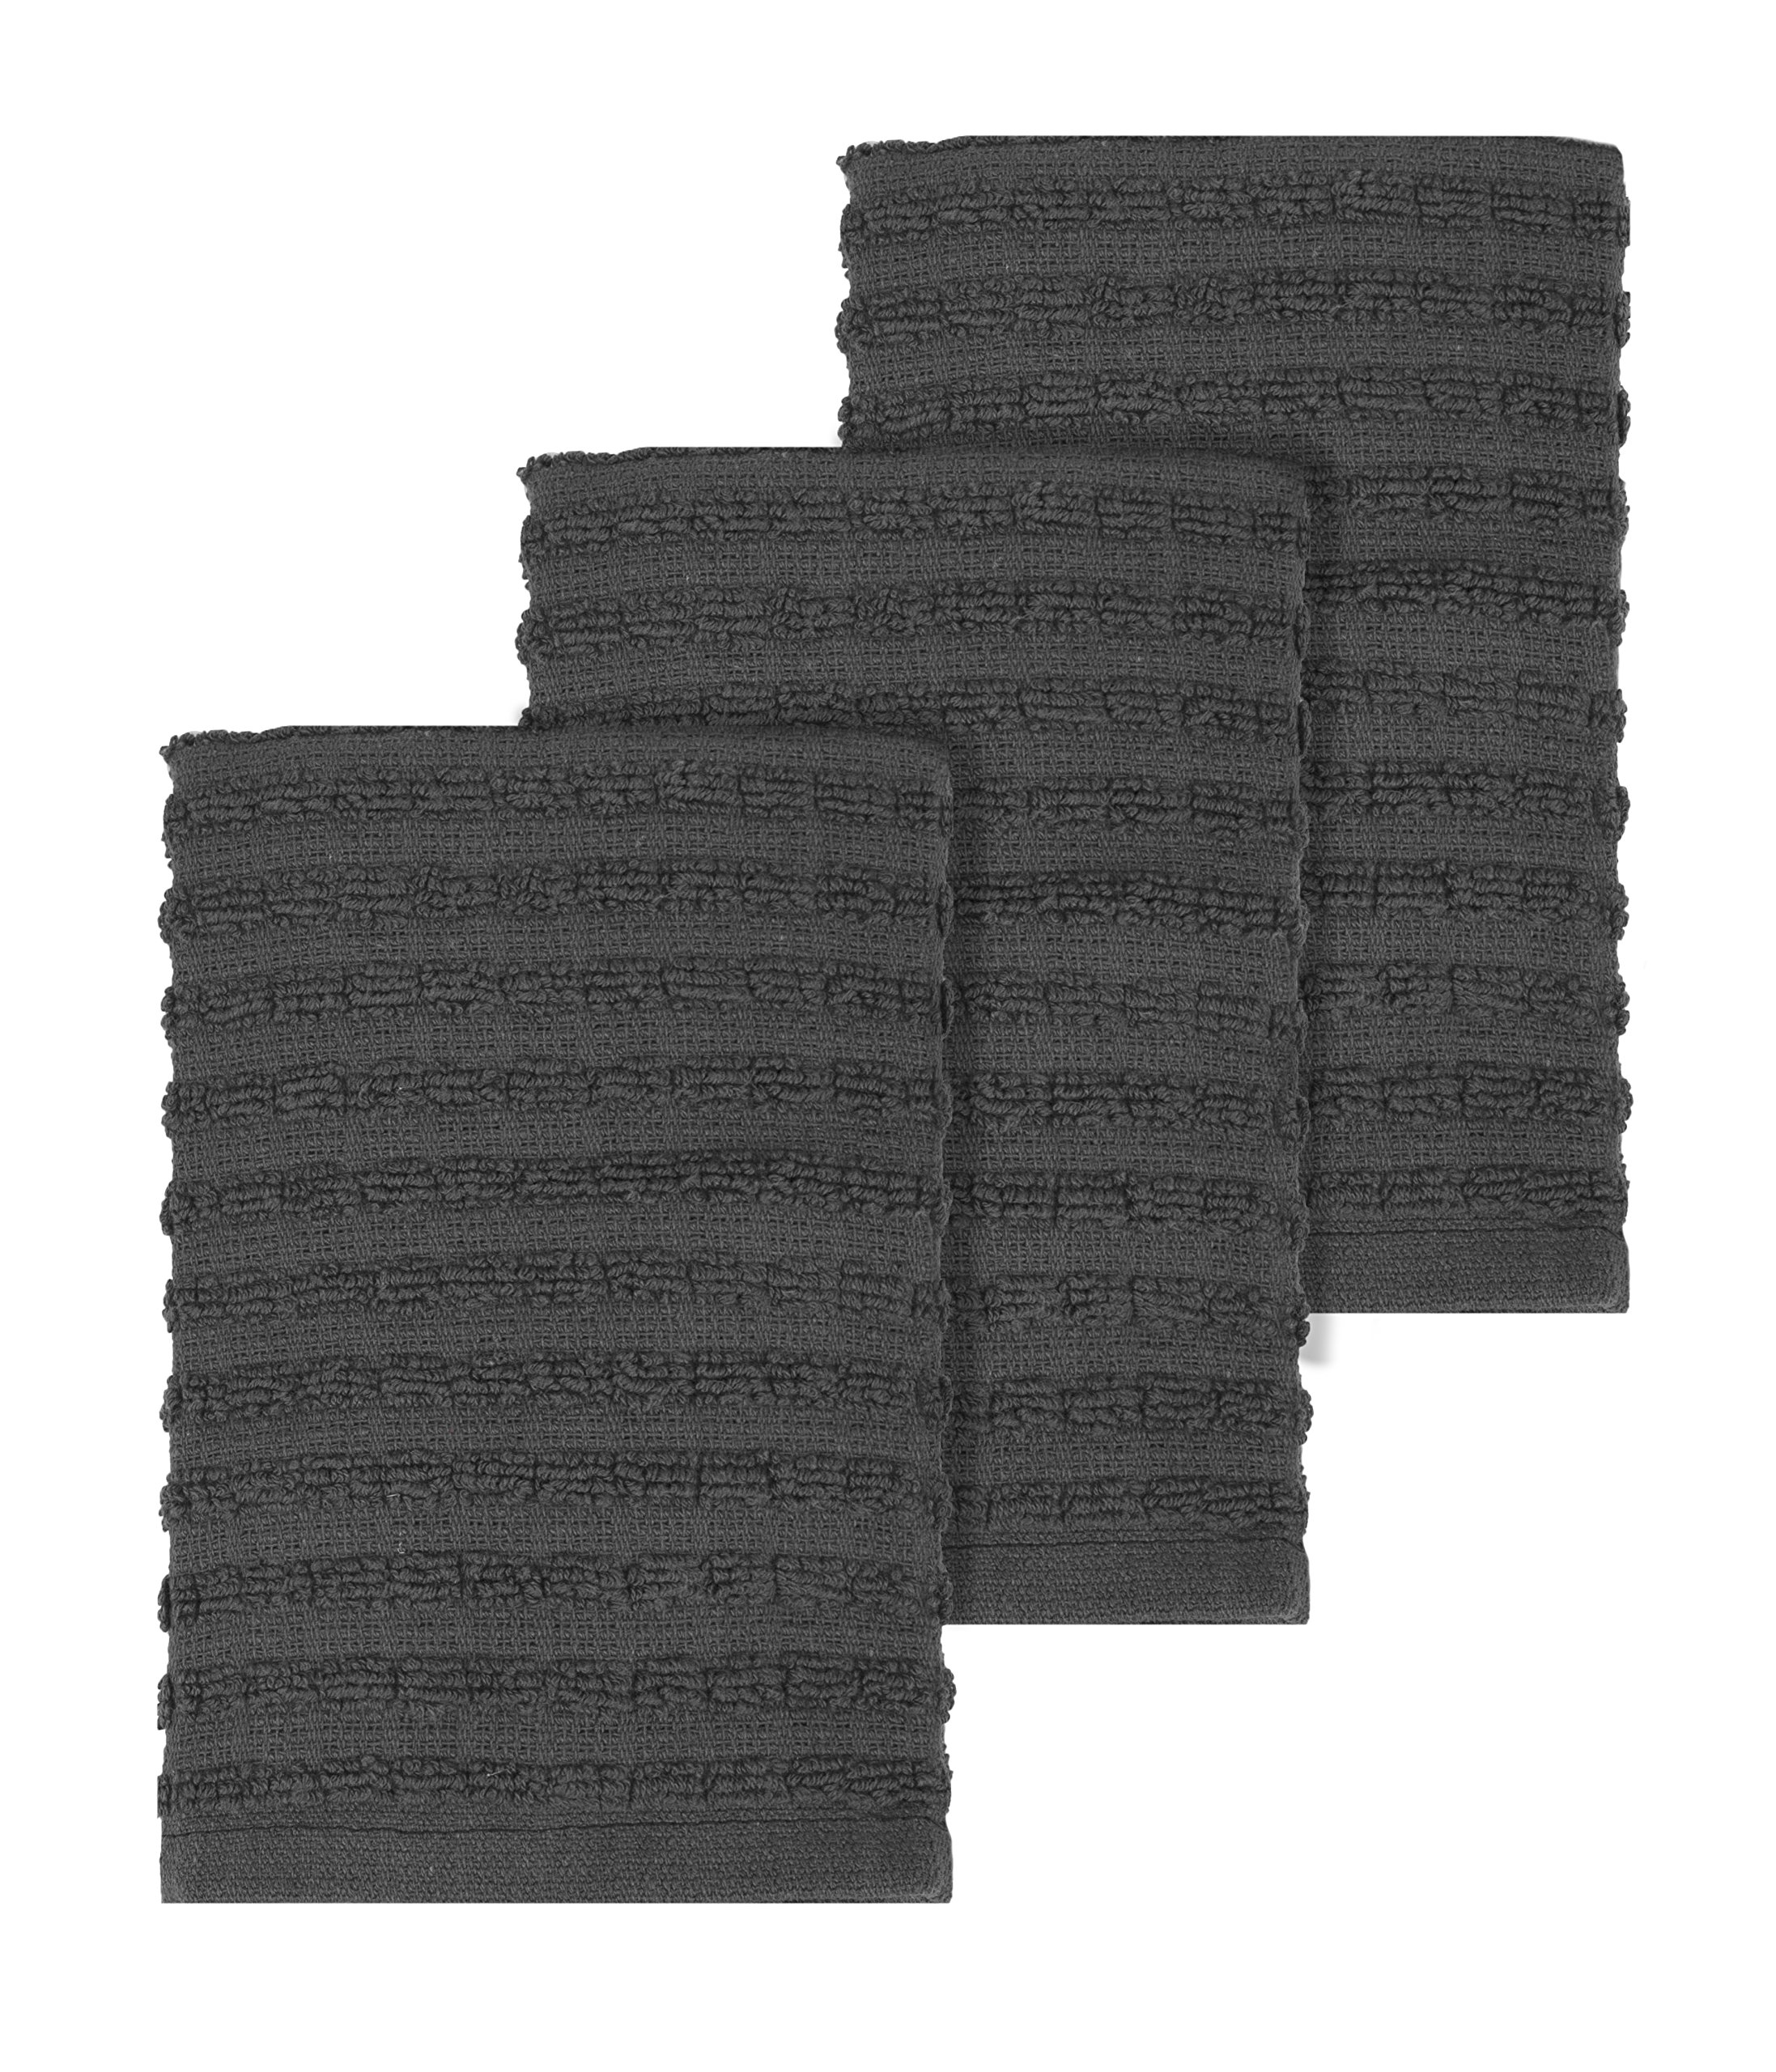 """Ritz Royale Collection 100% Combed Terry Cotton, Highly Absorbent, Kitchen Dish Cloth Set, 13-3/4"""" x 12"""", 3-Pack, Solid Graphite"""